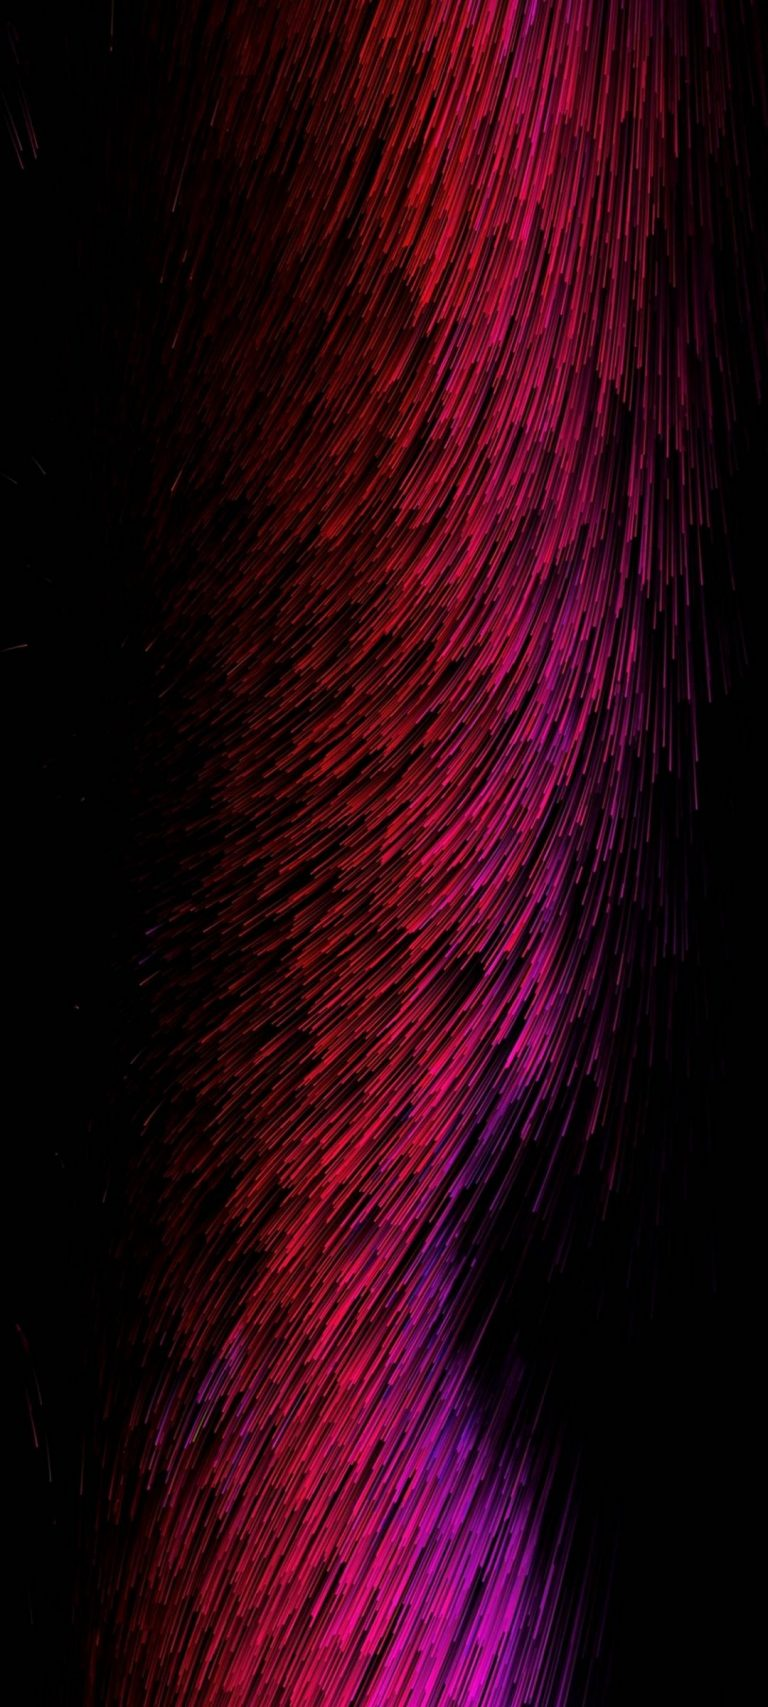 Threads Glow Red Pink Abstract 1080x2400 768x1707